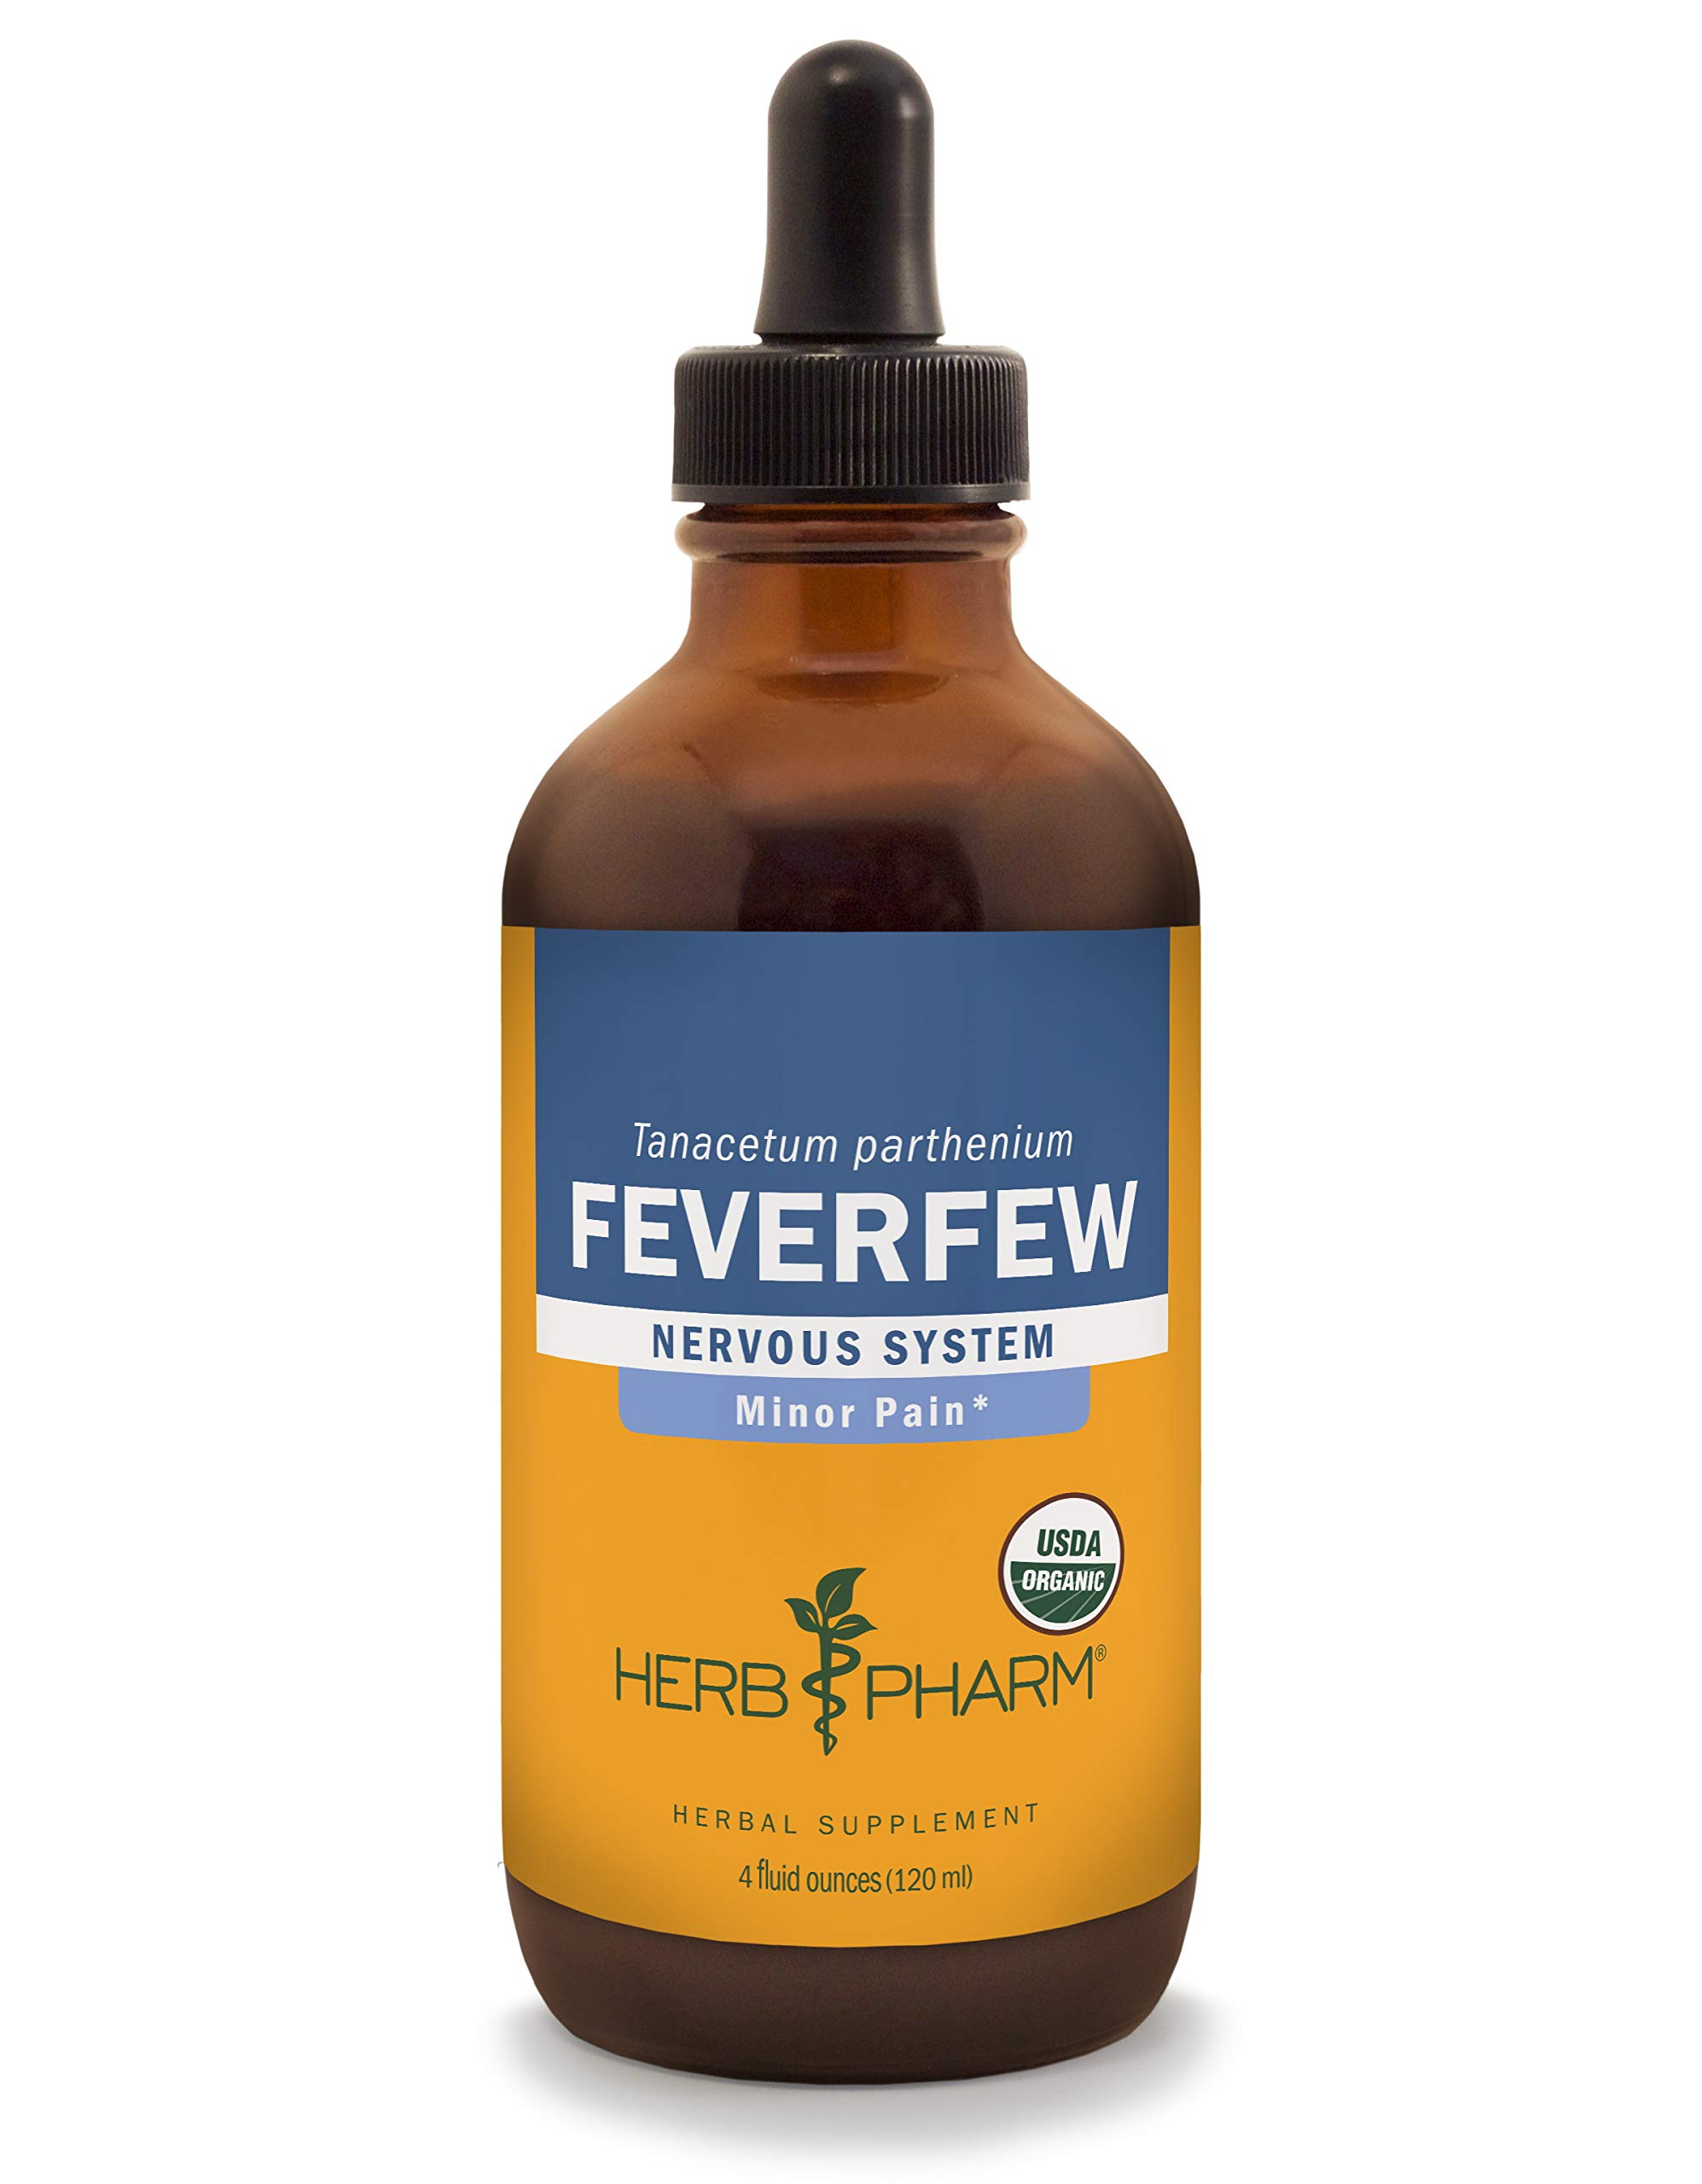 Herb Pharm Certified Organic Feverfew Liquid Extract for Minor Pain Support - 4 Ounce by Herb Pharm